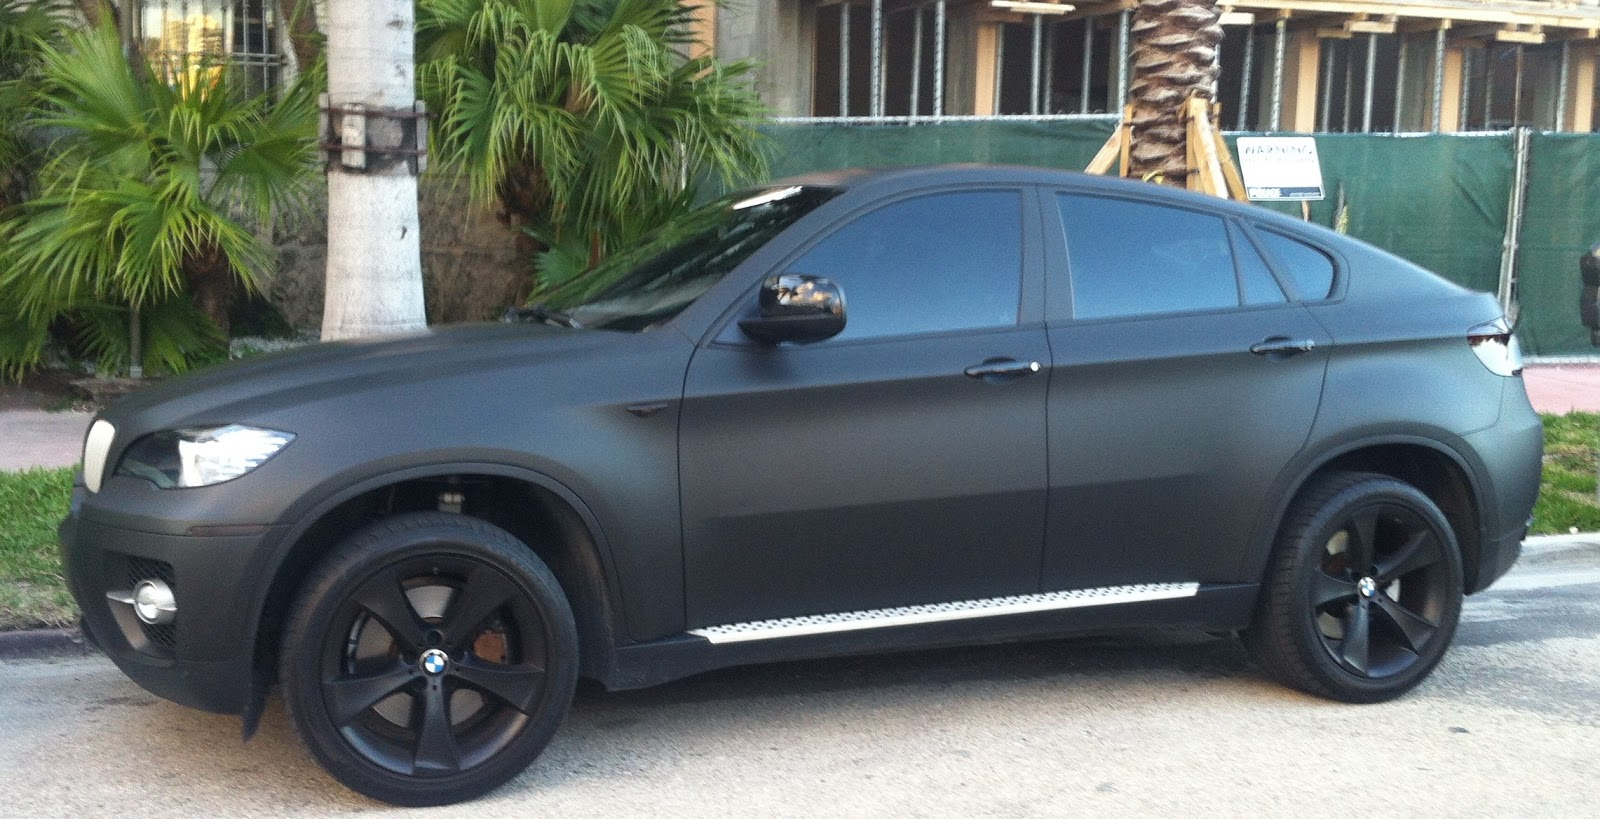 Matte Black Bmw X6 Exotic Cars On The Streets Of Miami